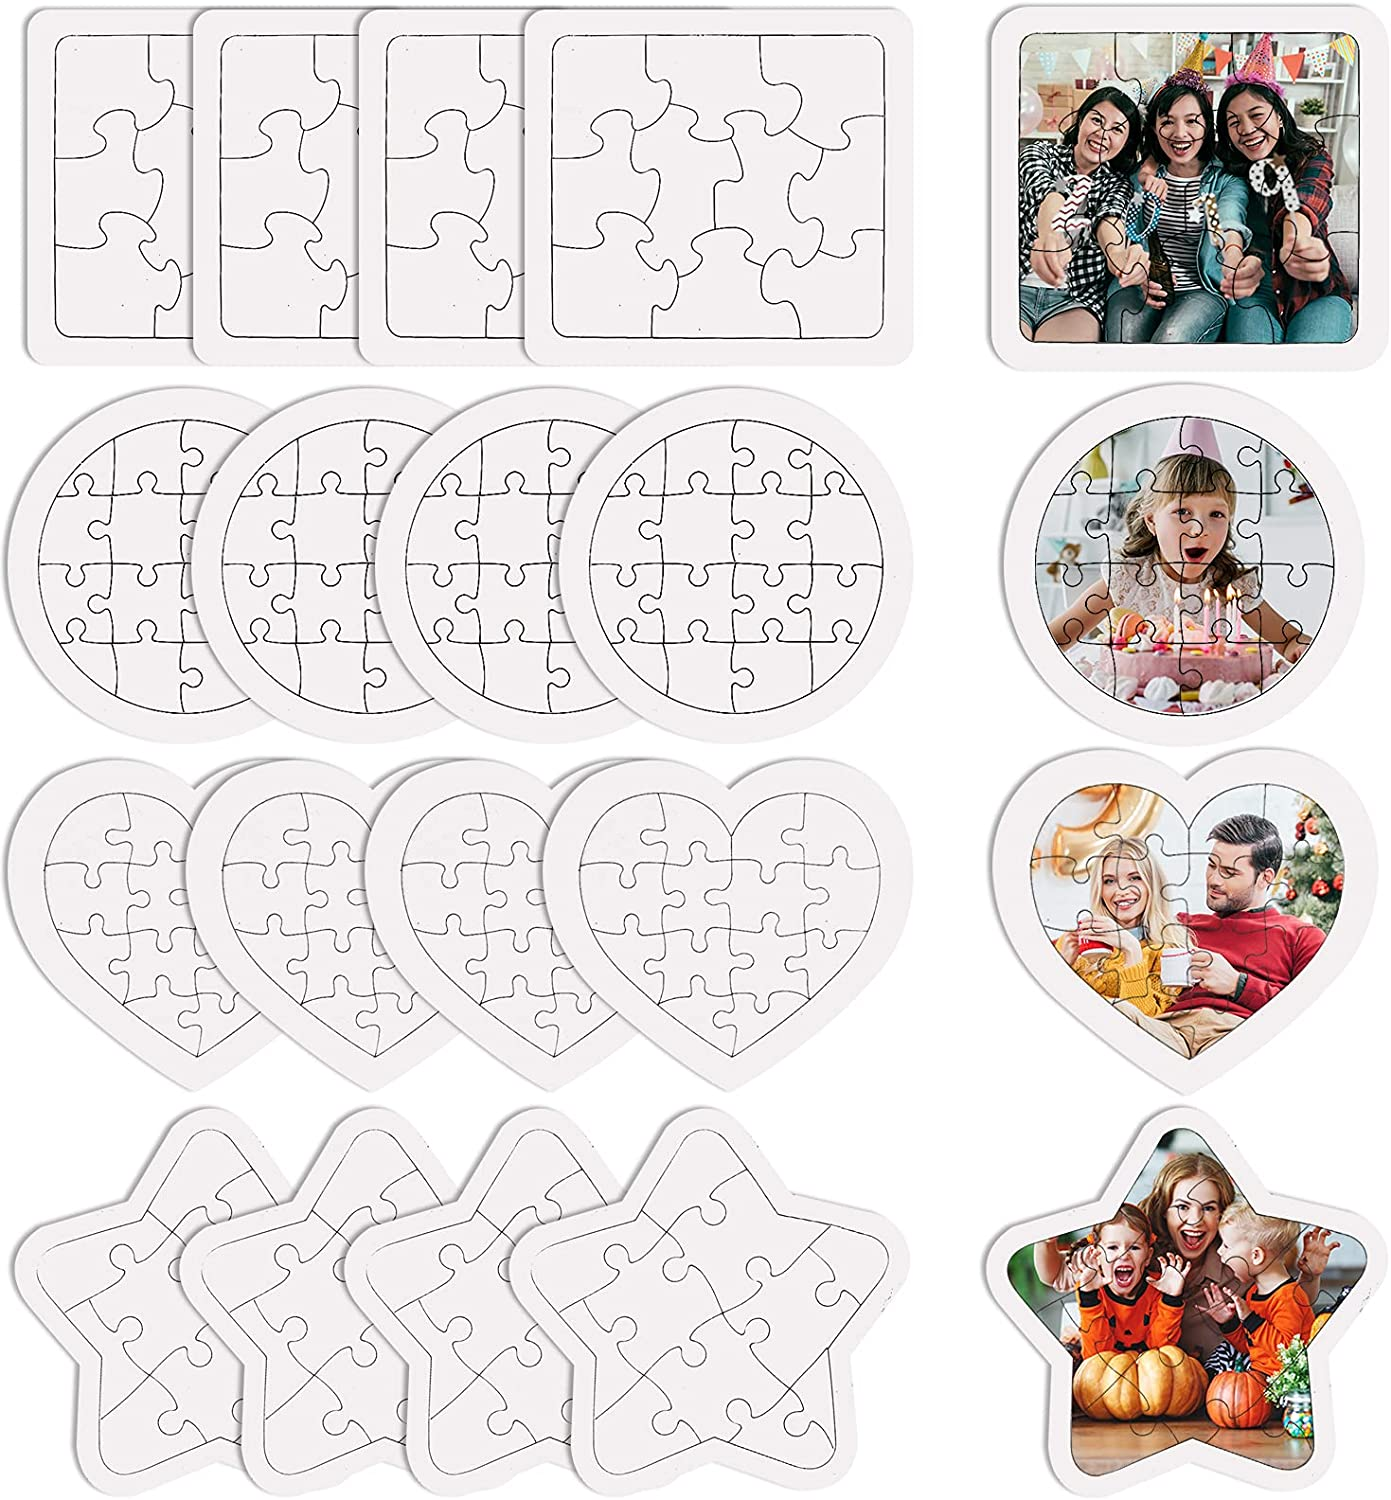 Chris.W 20 Sheets Sublimation Max 72% OFF Blanks Jigsaw Puzzl White Puzzles latest